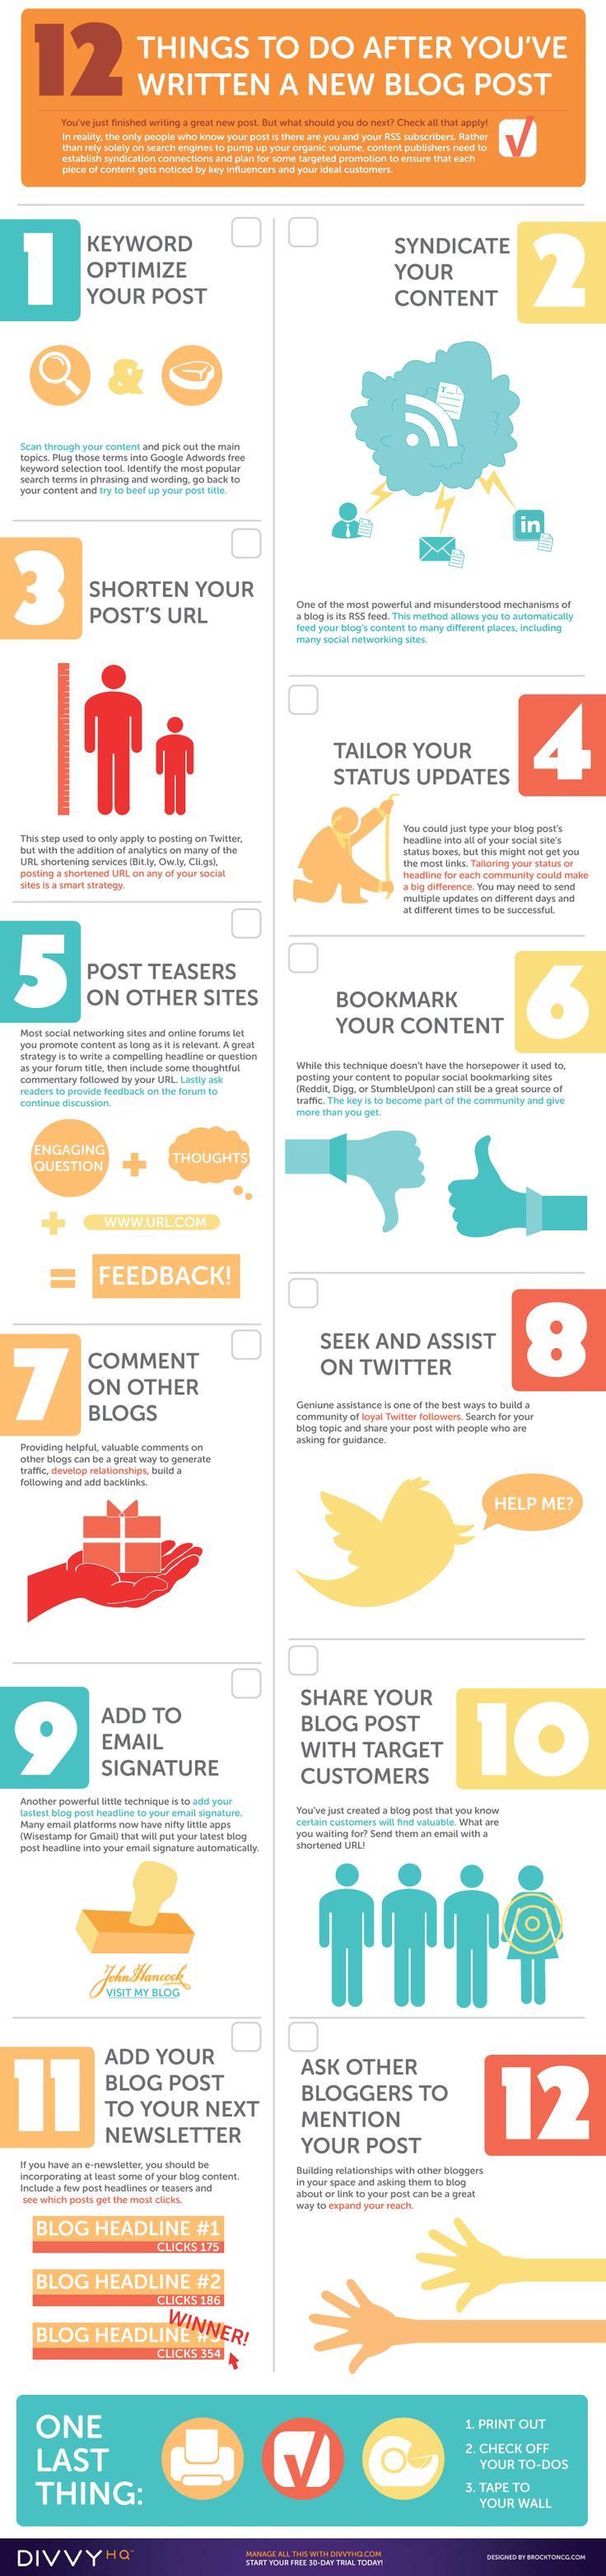 Blog Post Promotion ChecklistPost Promotion, 12 Things, Blog Tips, Social Media, Blog Post, Infographic, Socialmedia, Blogpost, Things To Do